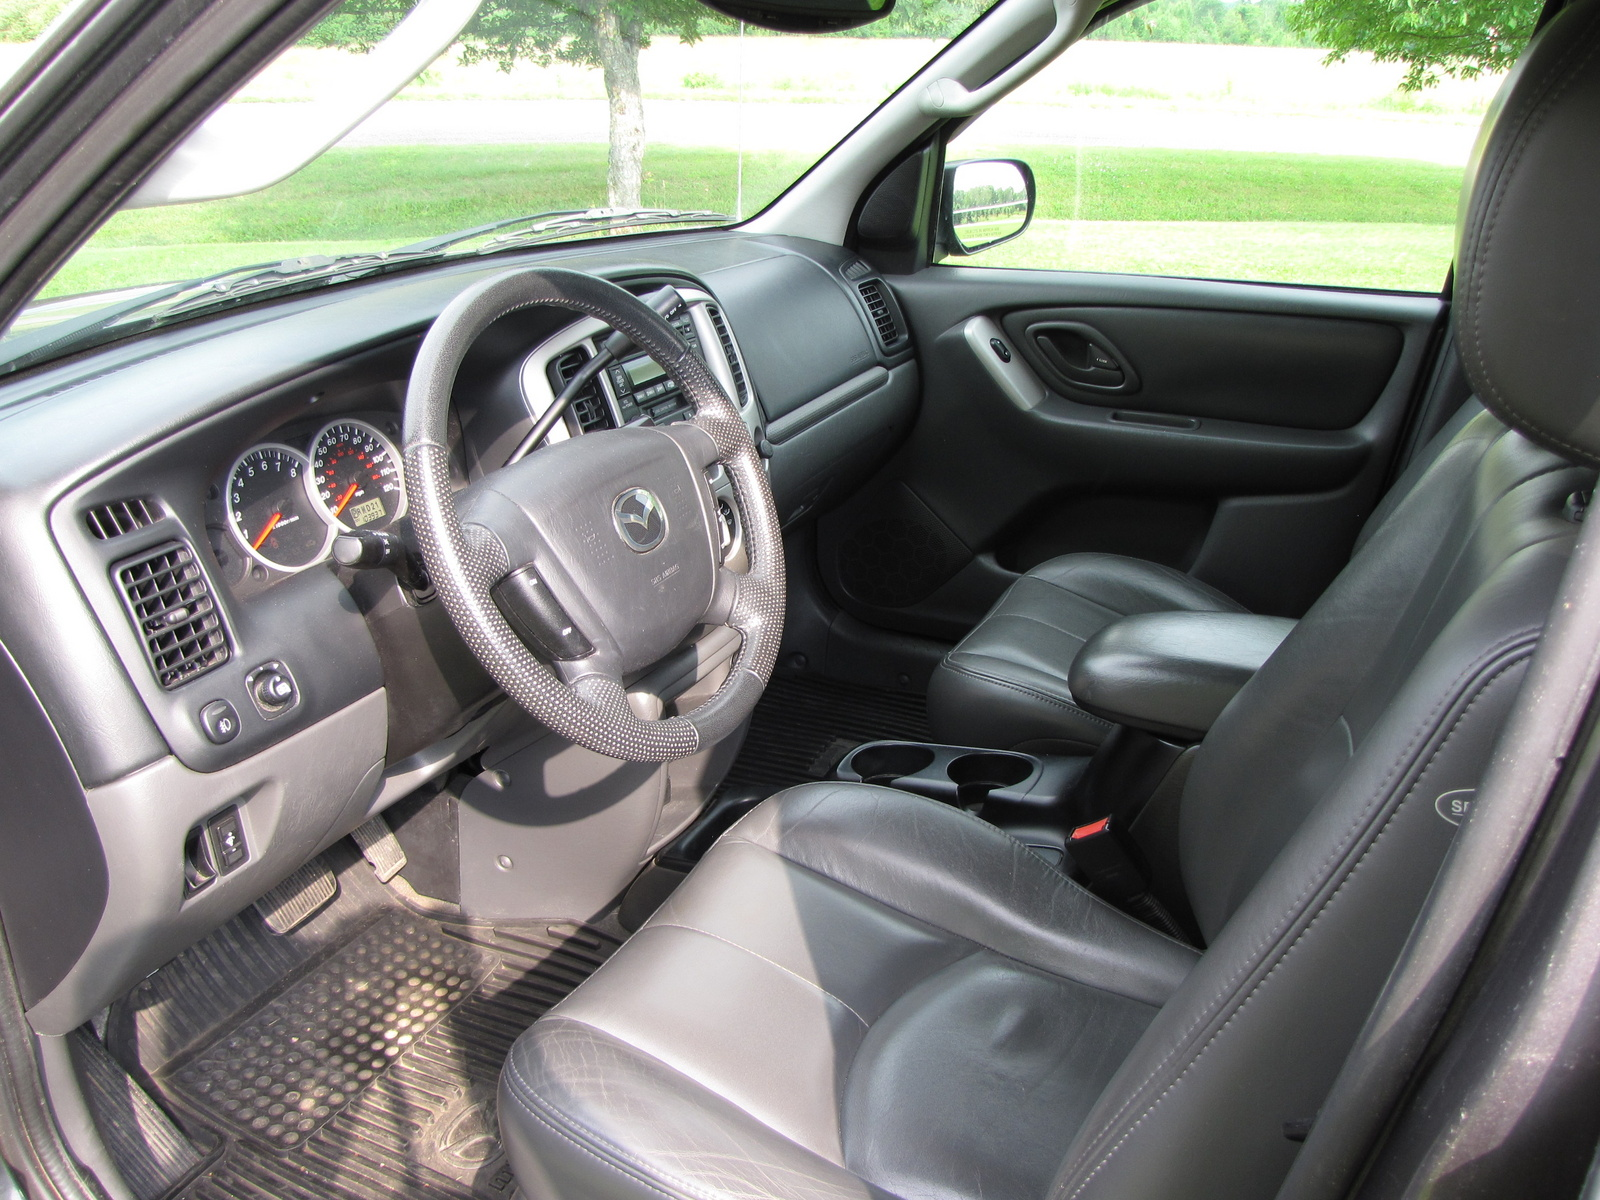 2004 mazda tribute interior pictures cargurus. Black Bedroom Furniture Sets. Home Design Ideas